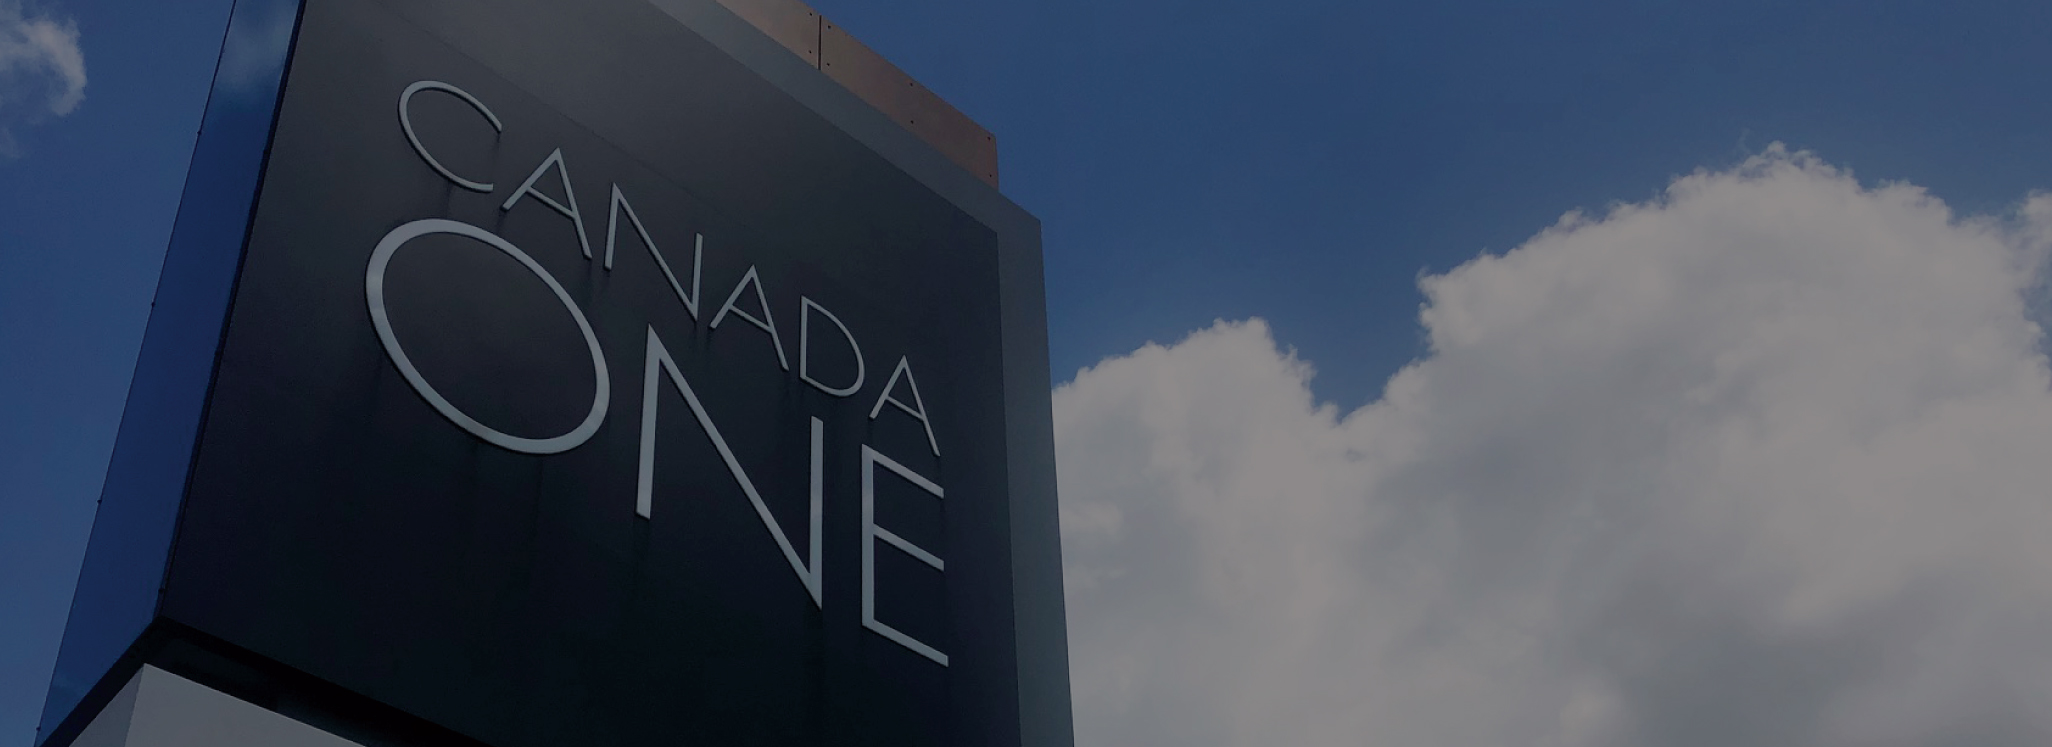 Canada One Outlets Niagara Falls located at 7500 Lundy's Lane